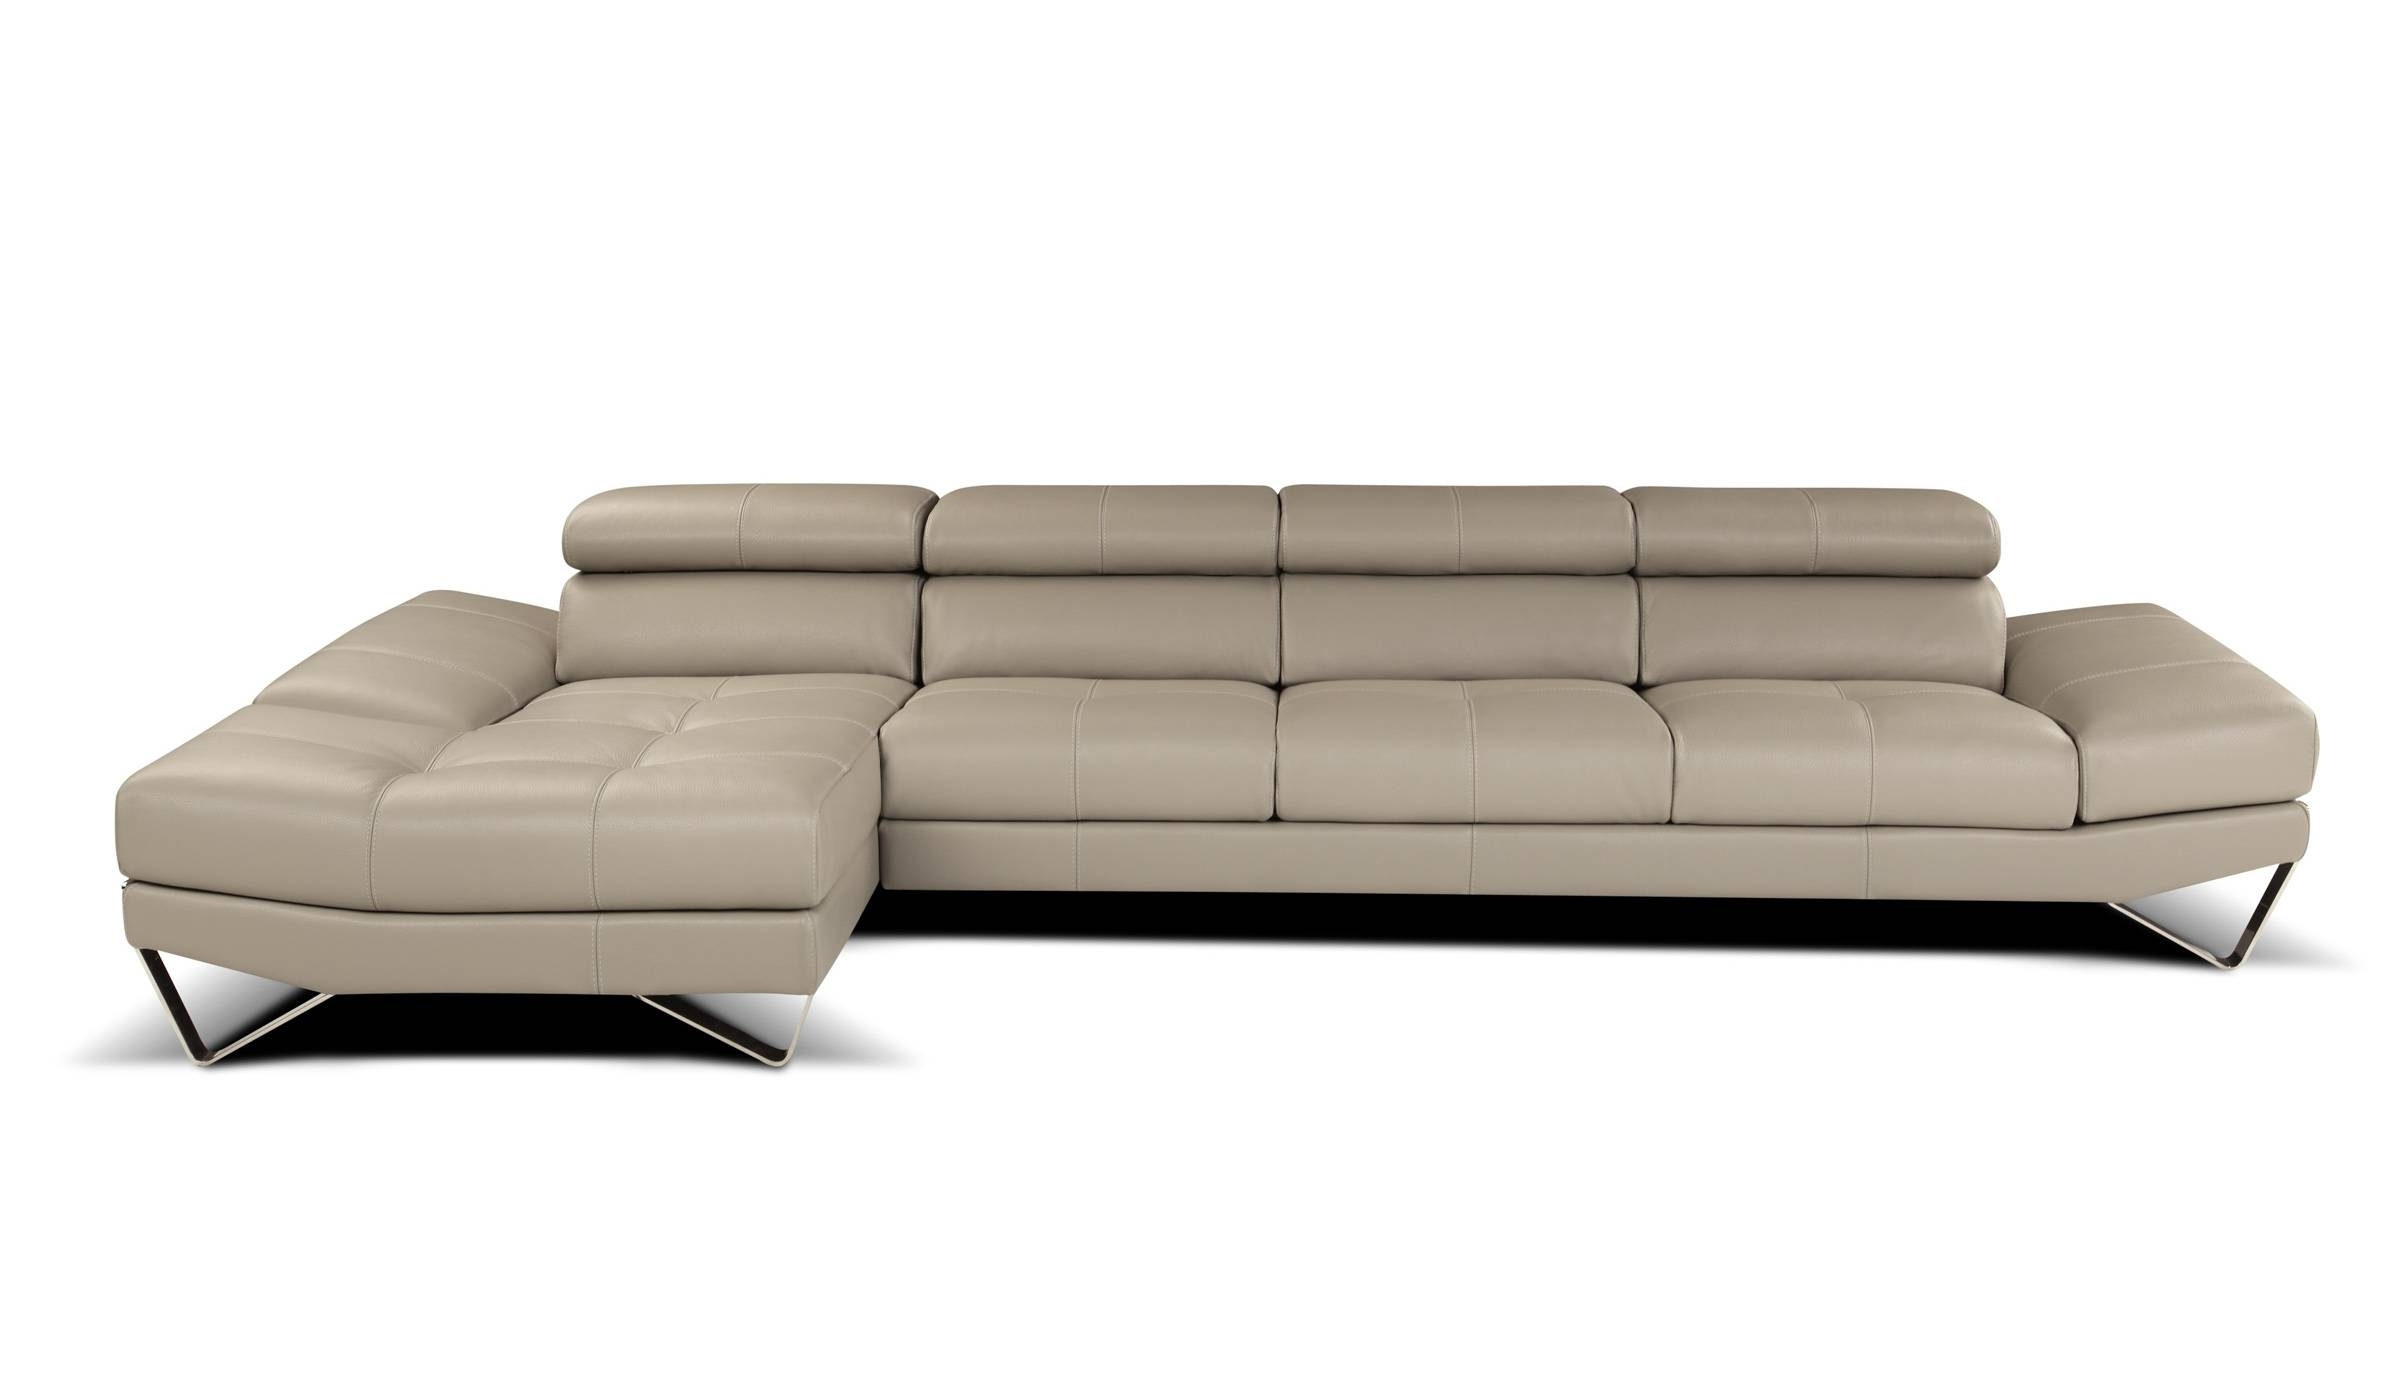 High End Sofas Intended For Well Liked Sophisticated All Italian Leather Sectional Sofa Spokane (View 16 of 20)